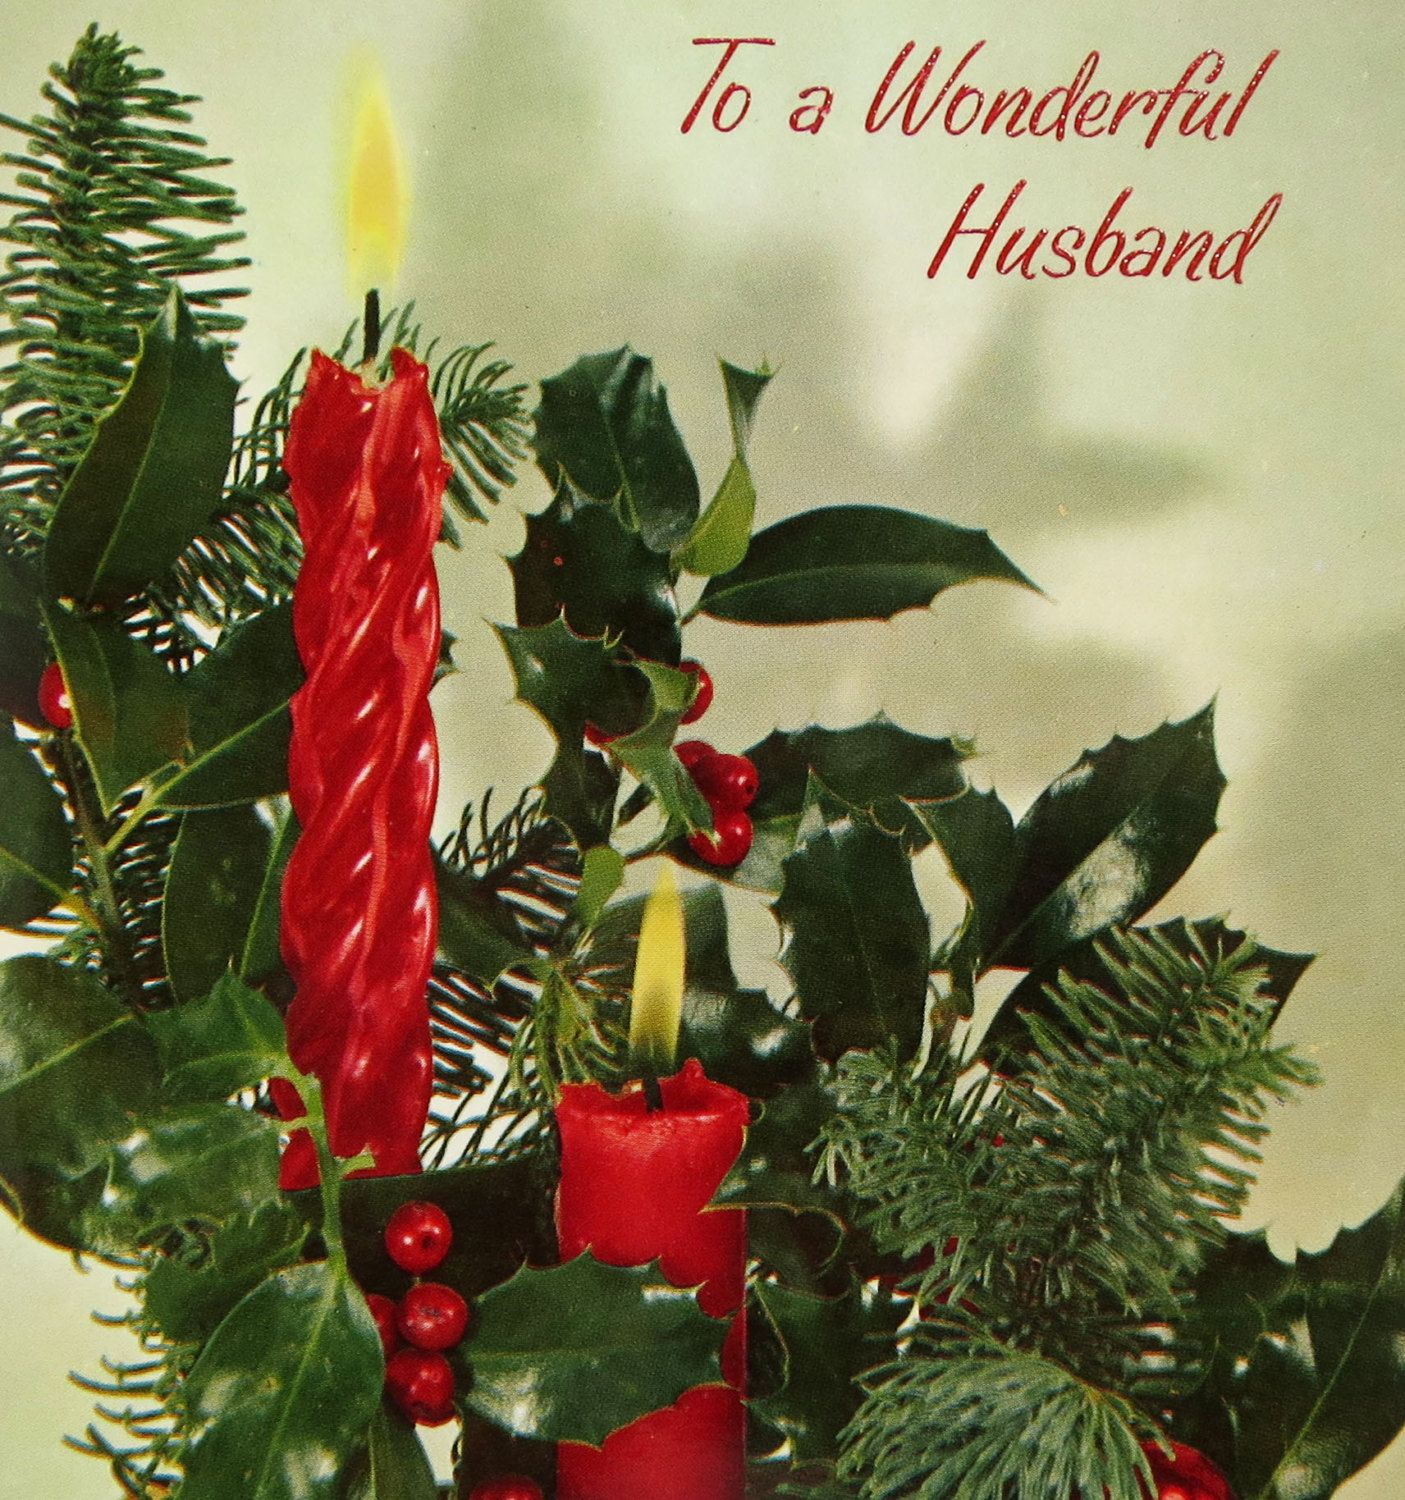 Vintage hallmark glossy christmas card for your husband with lovely vintage hallmark glossy christmas card for your husband with lovely red candles holly and pine fronds m4hsunfo